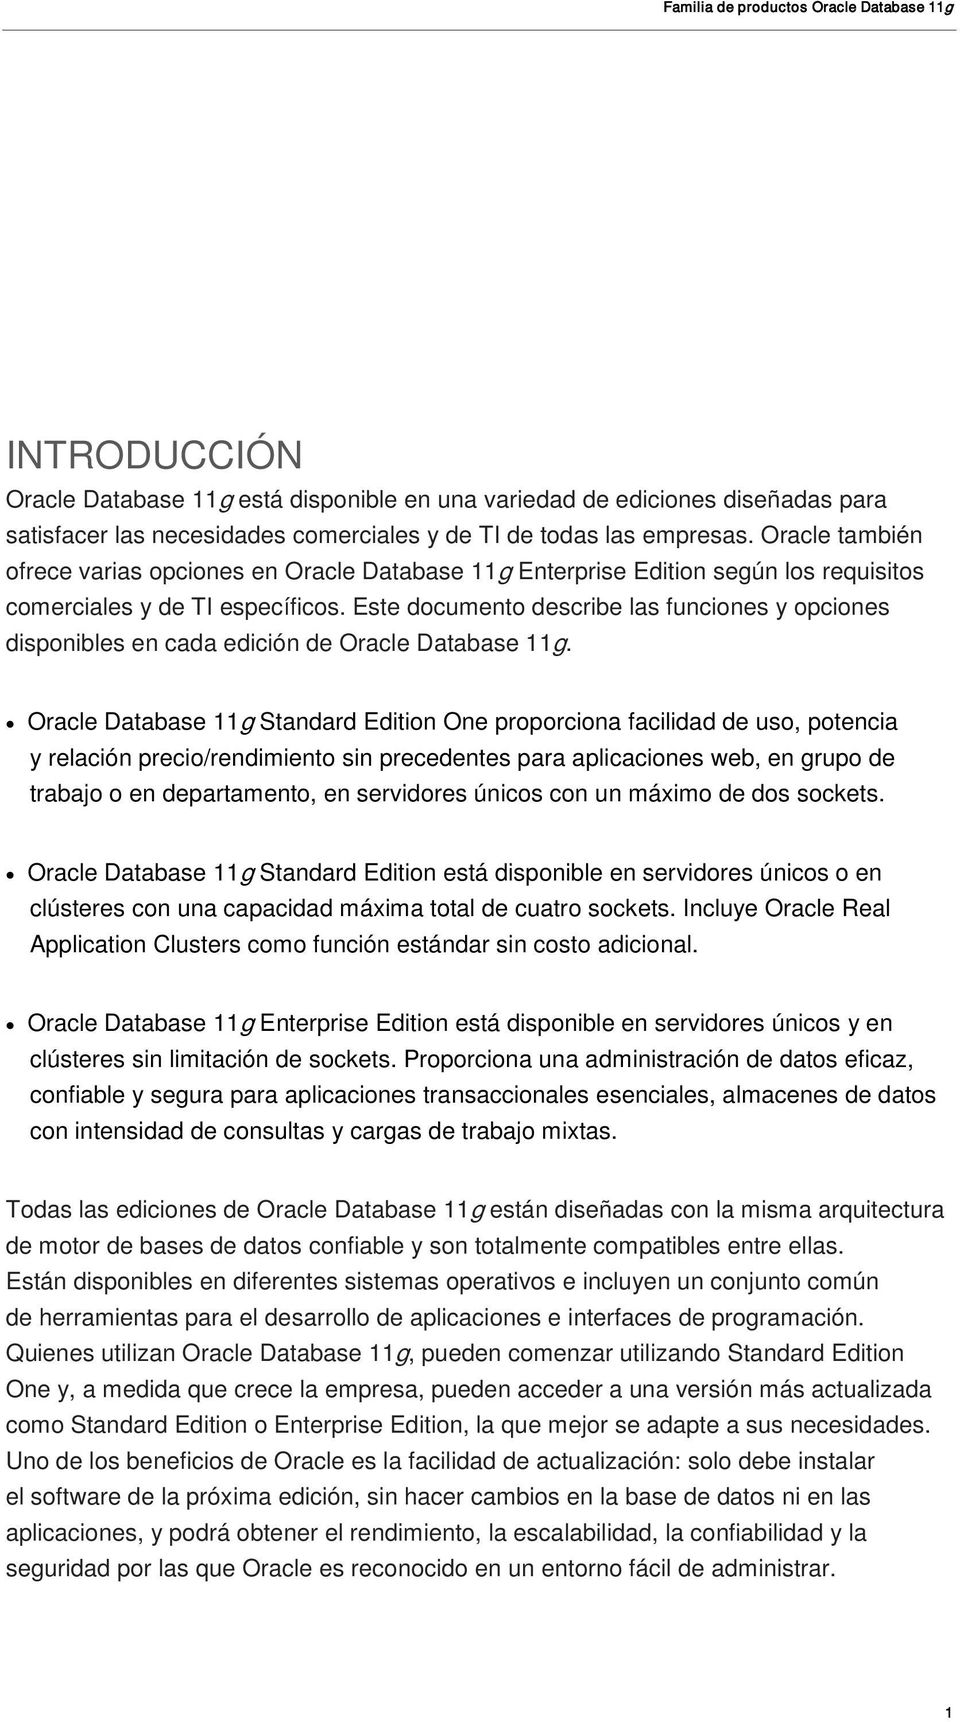 Este documento describe las funciones y opciones disponibles en cada edición de Oracle Database 11g.